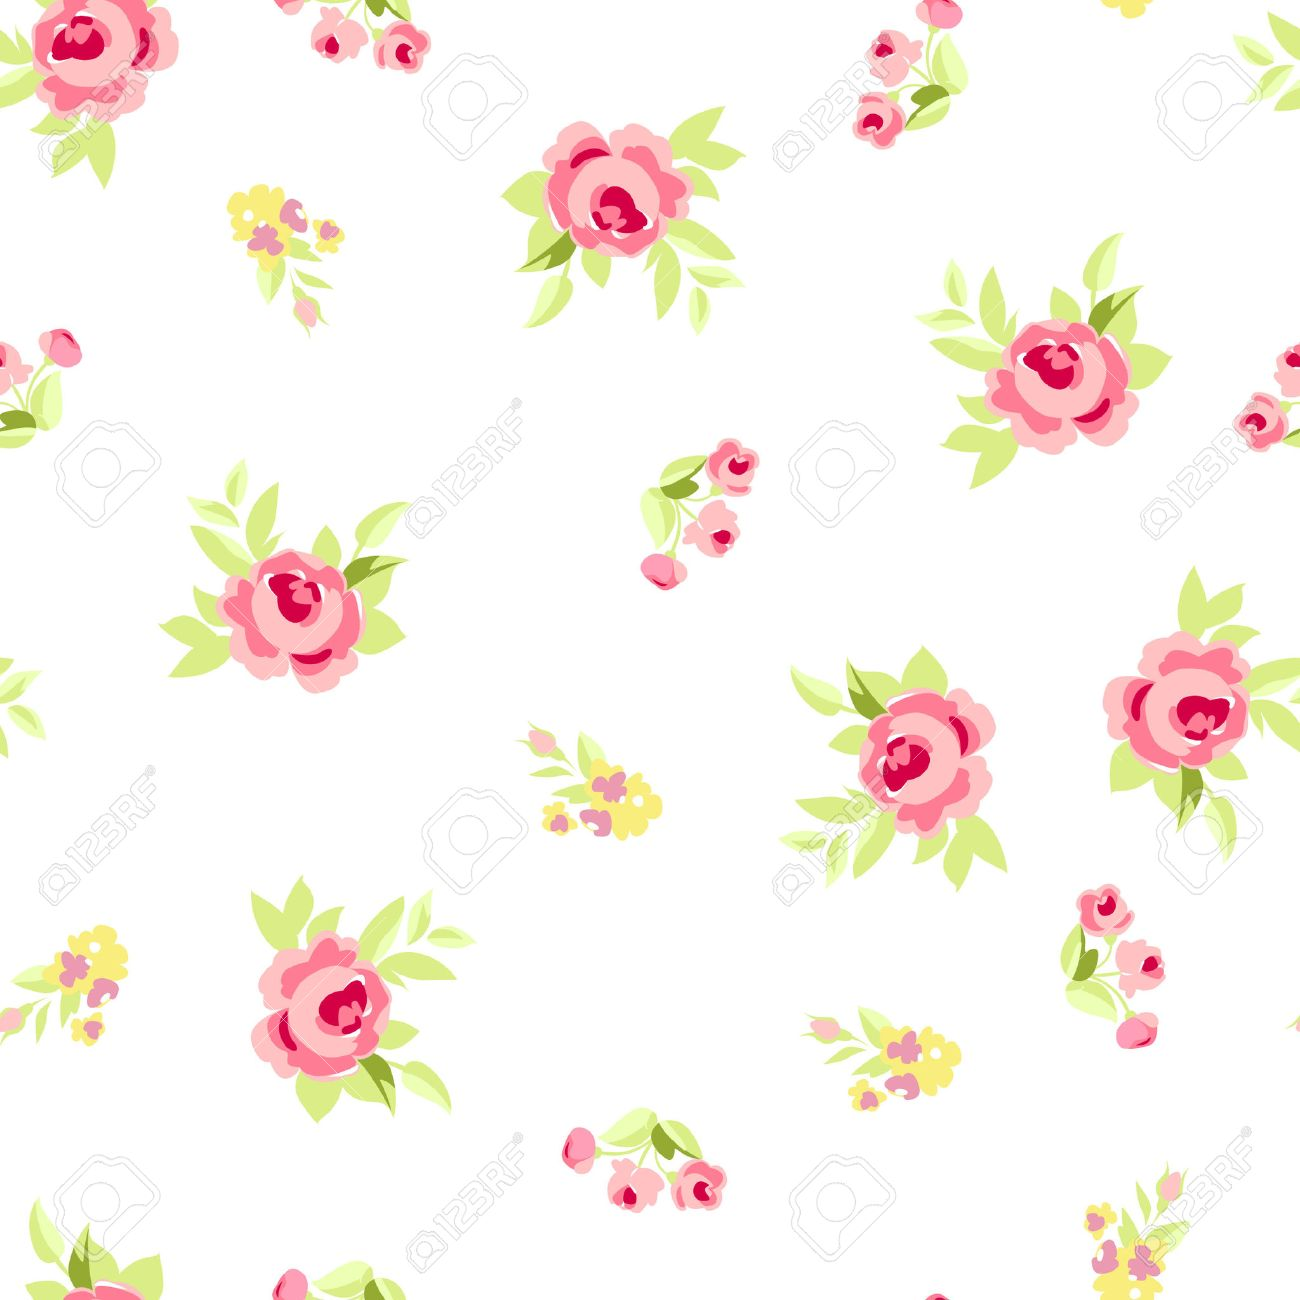 Seamless floral pattern with little flowers pink roses vector seamless floral pattern with little flowers pink roses vector floral illustration in vintage style mightylinksfo